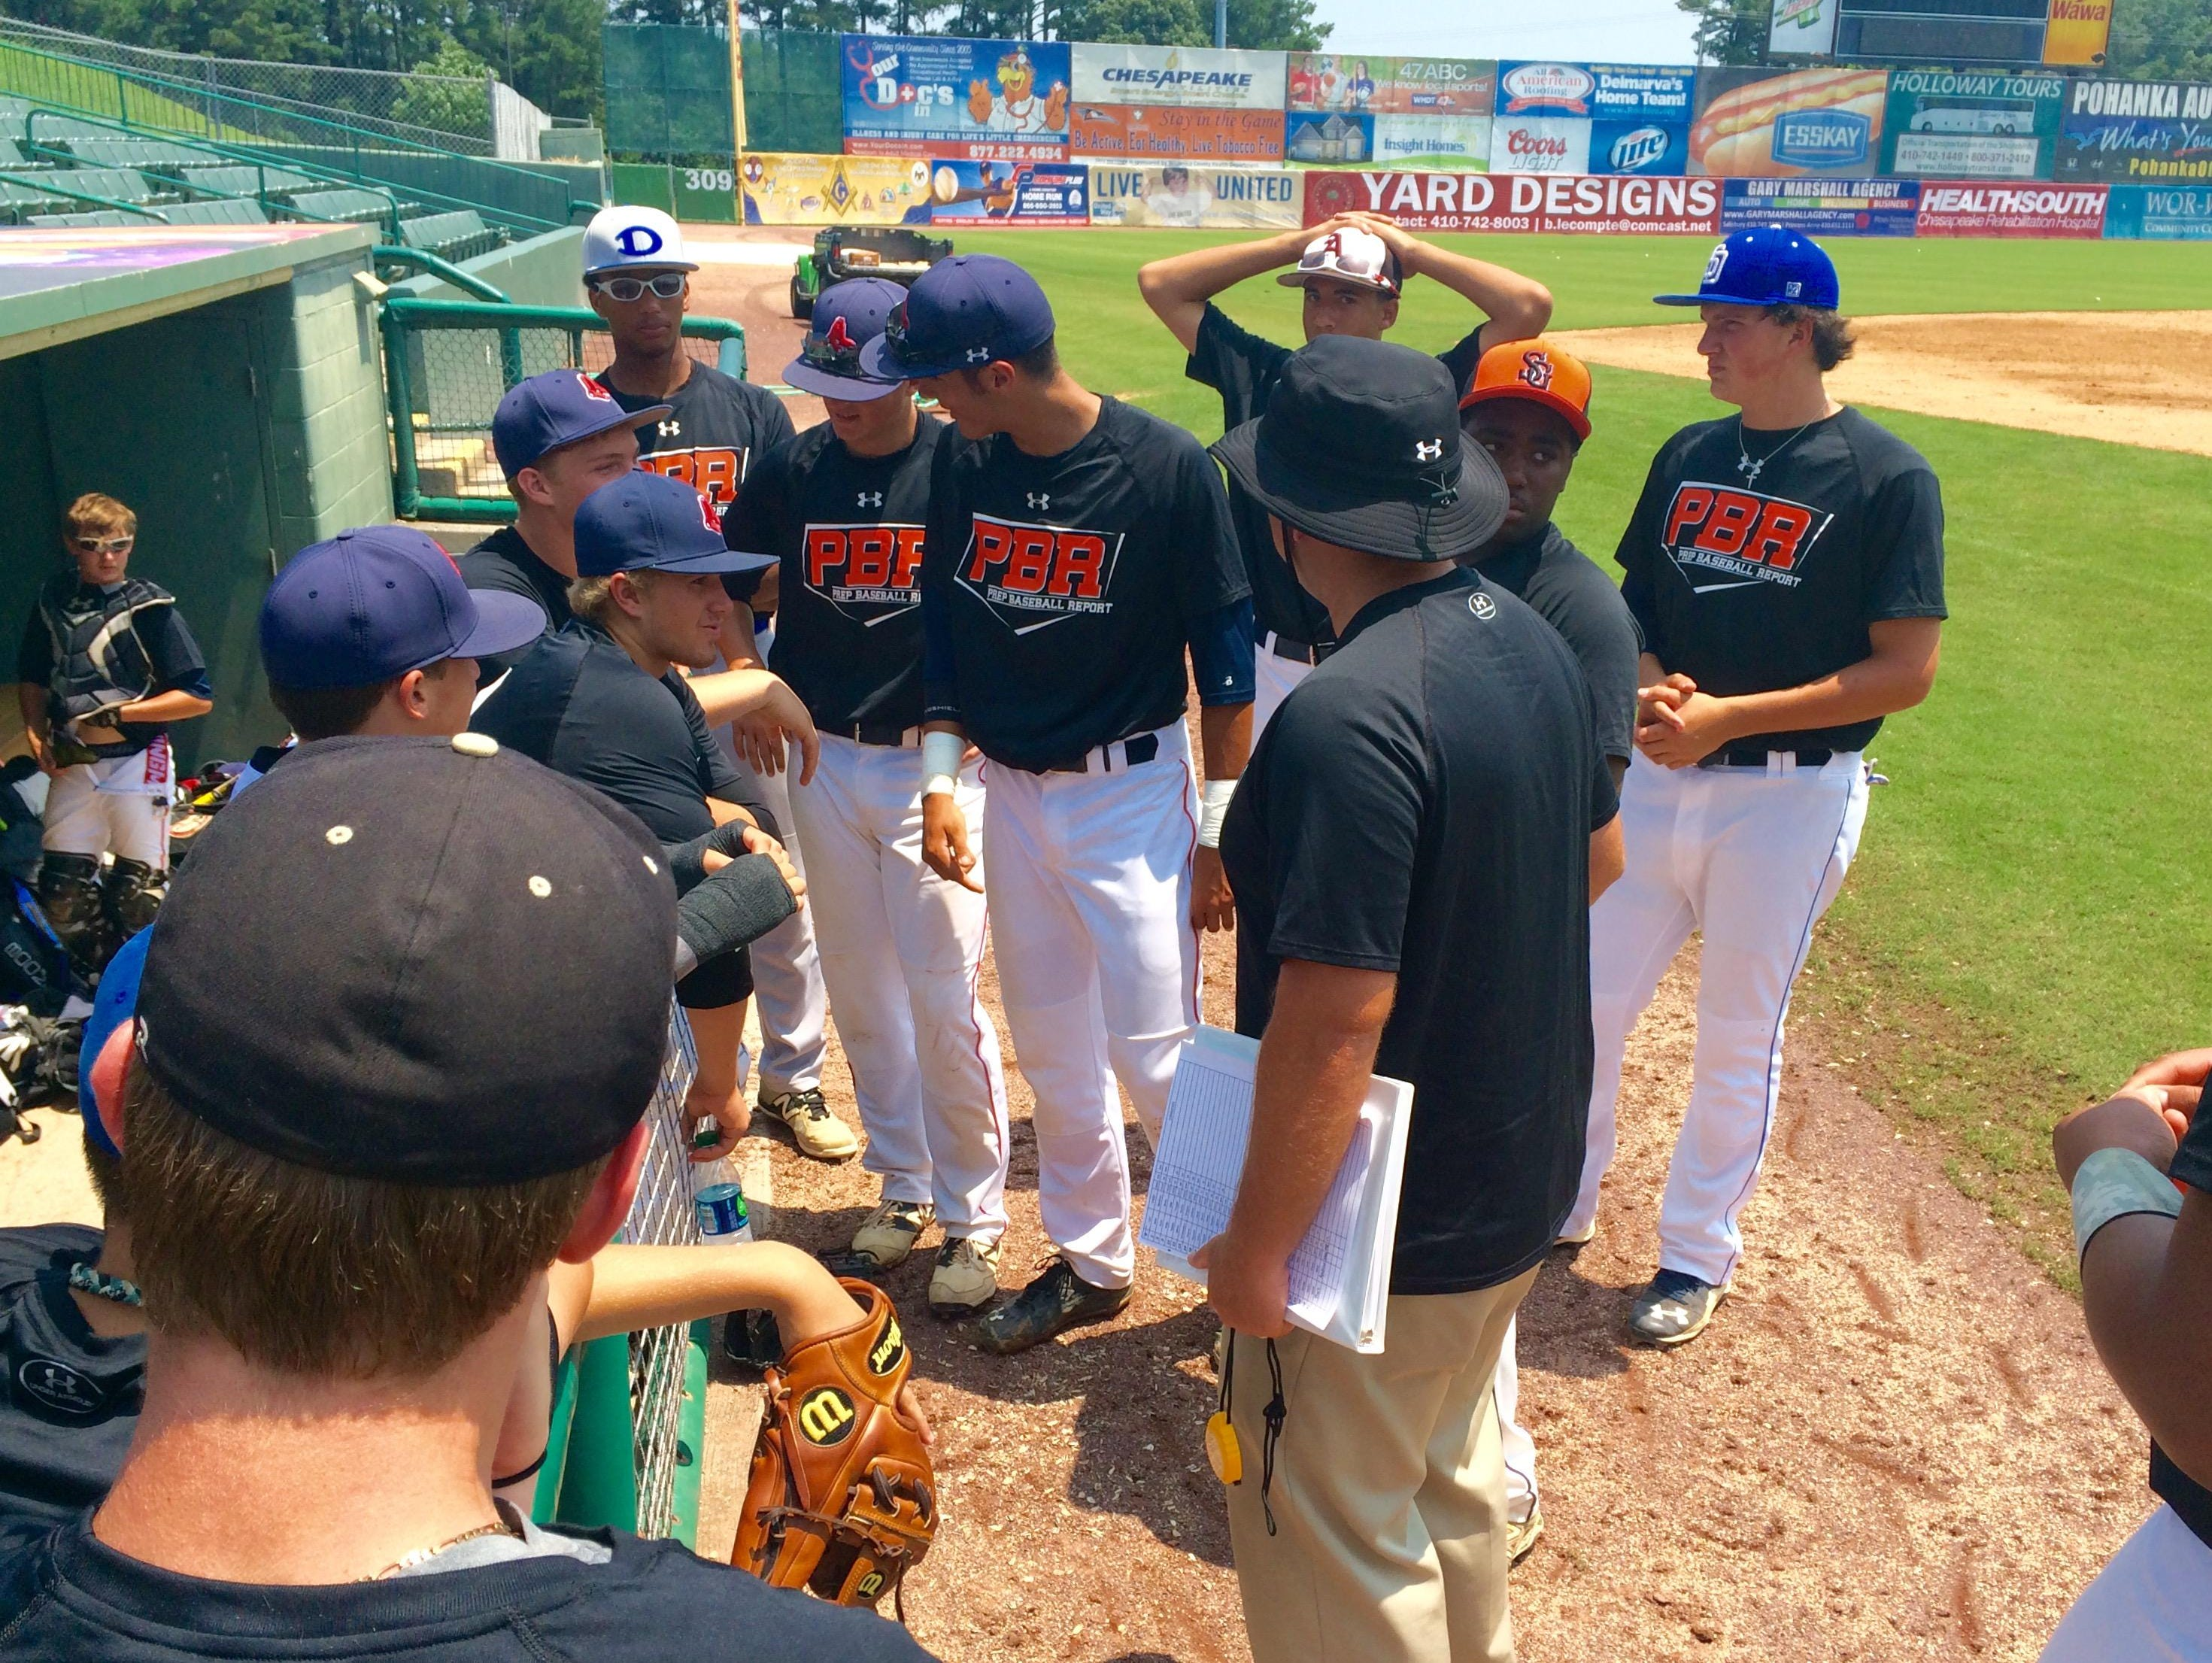 Players gather at the end of the event to talk with the PBR Director of Scouting for Maryland Jerry Shank.